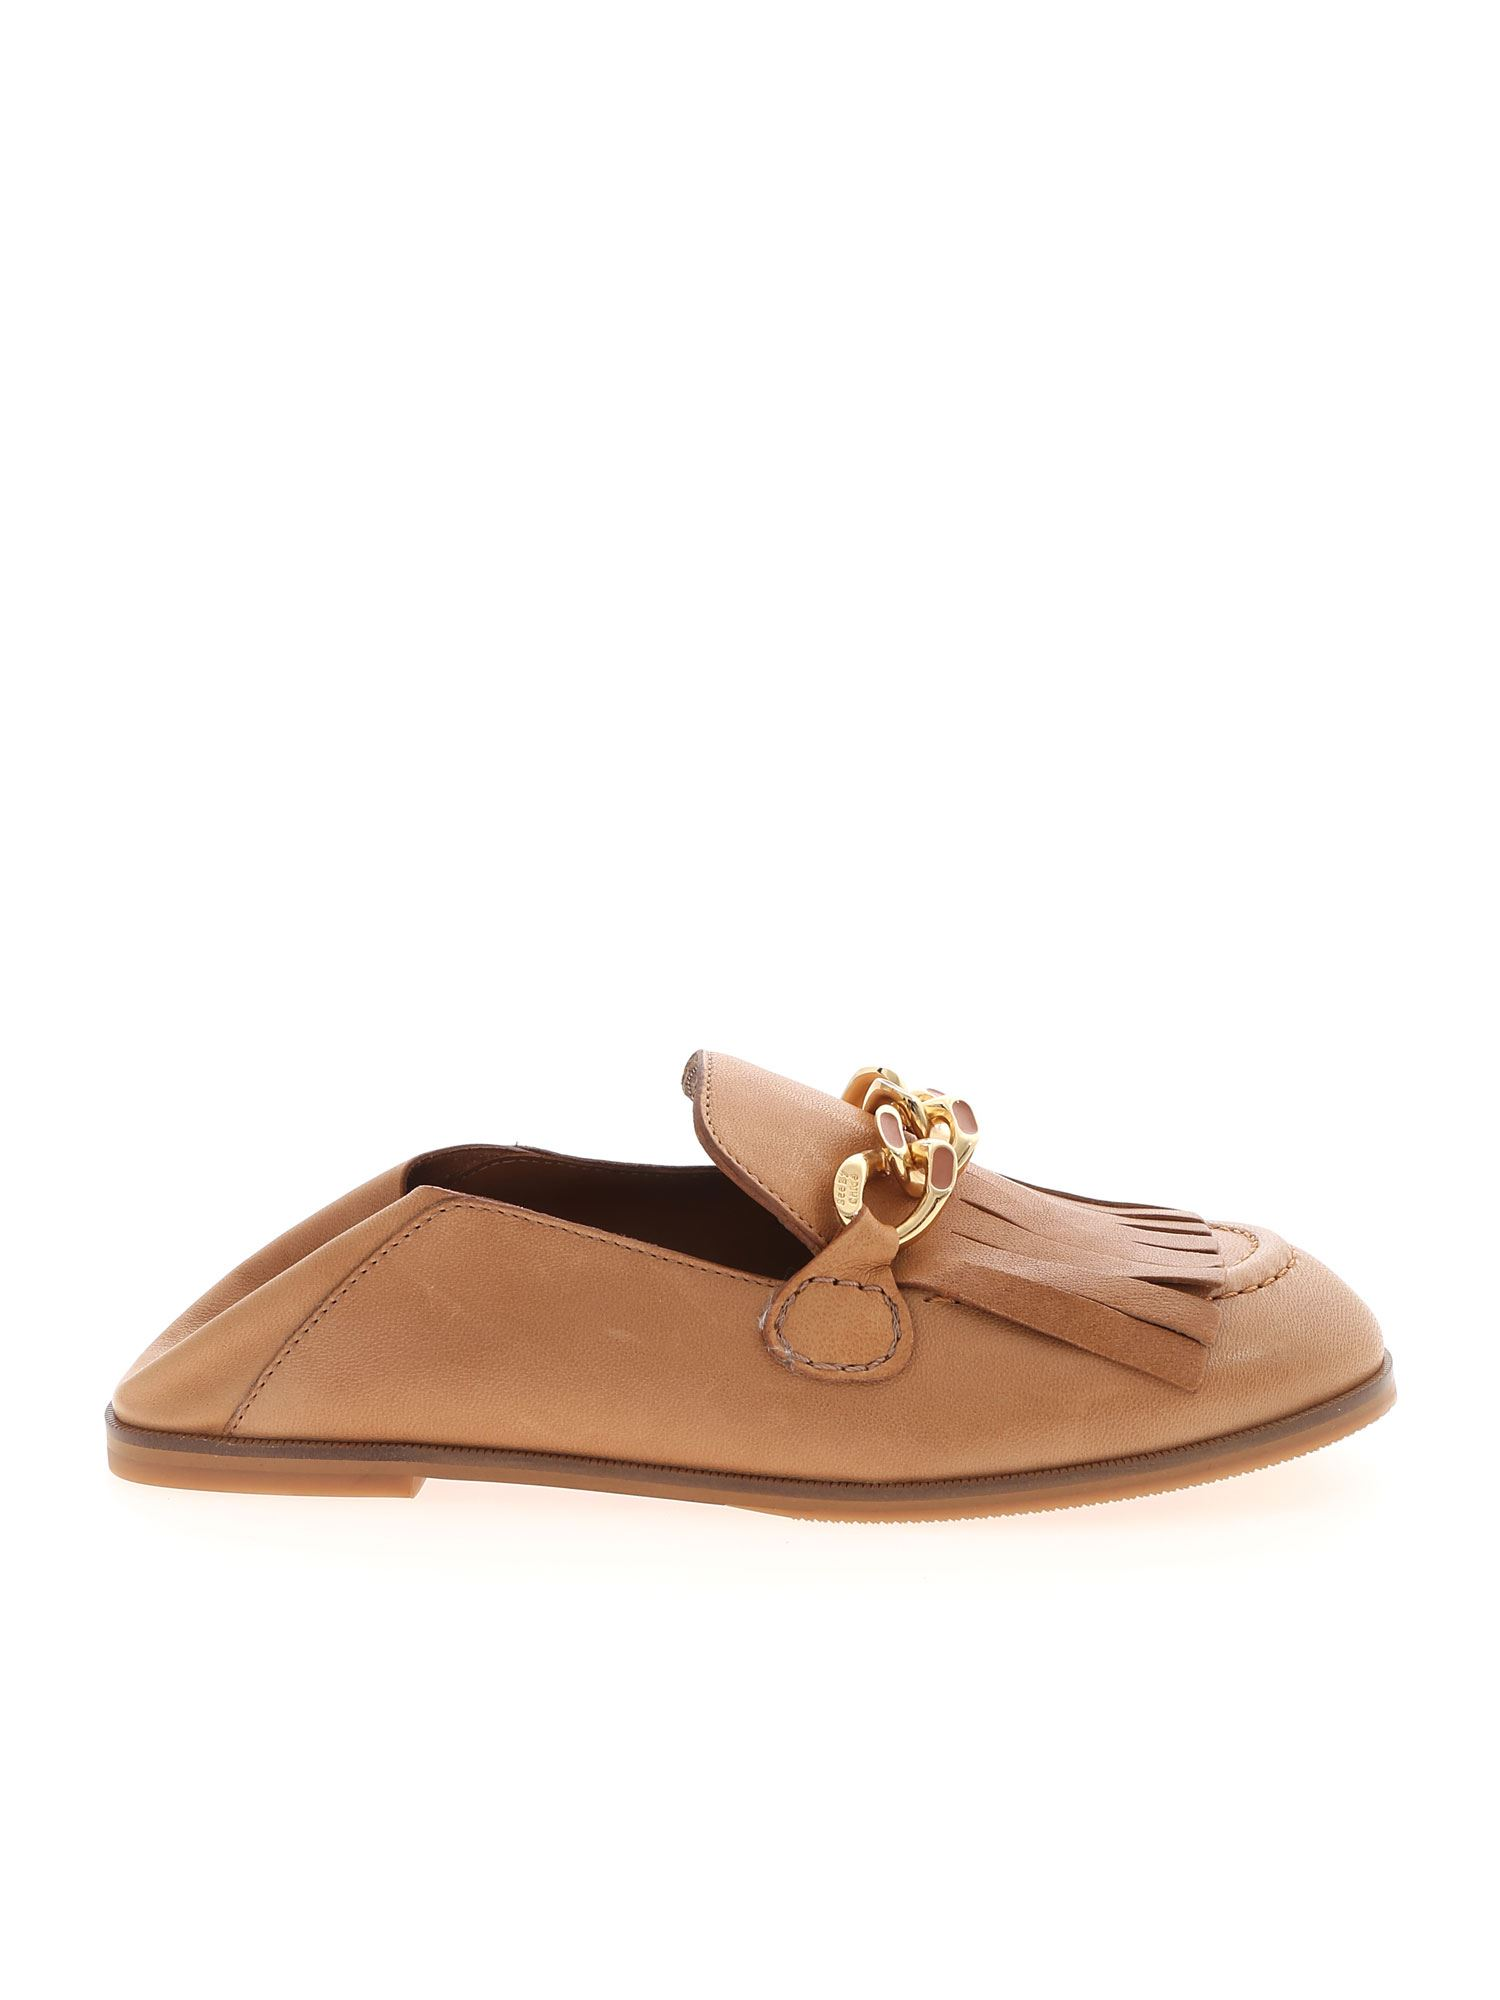 See By Chloé DANDY MULES IN SAND COLOR